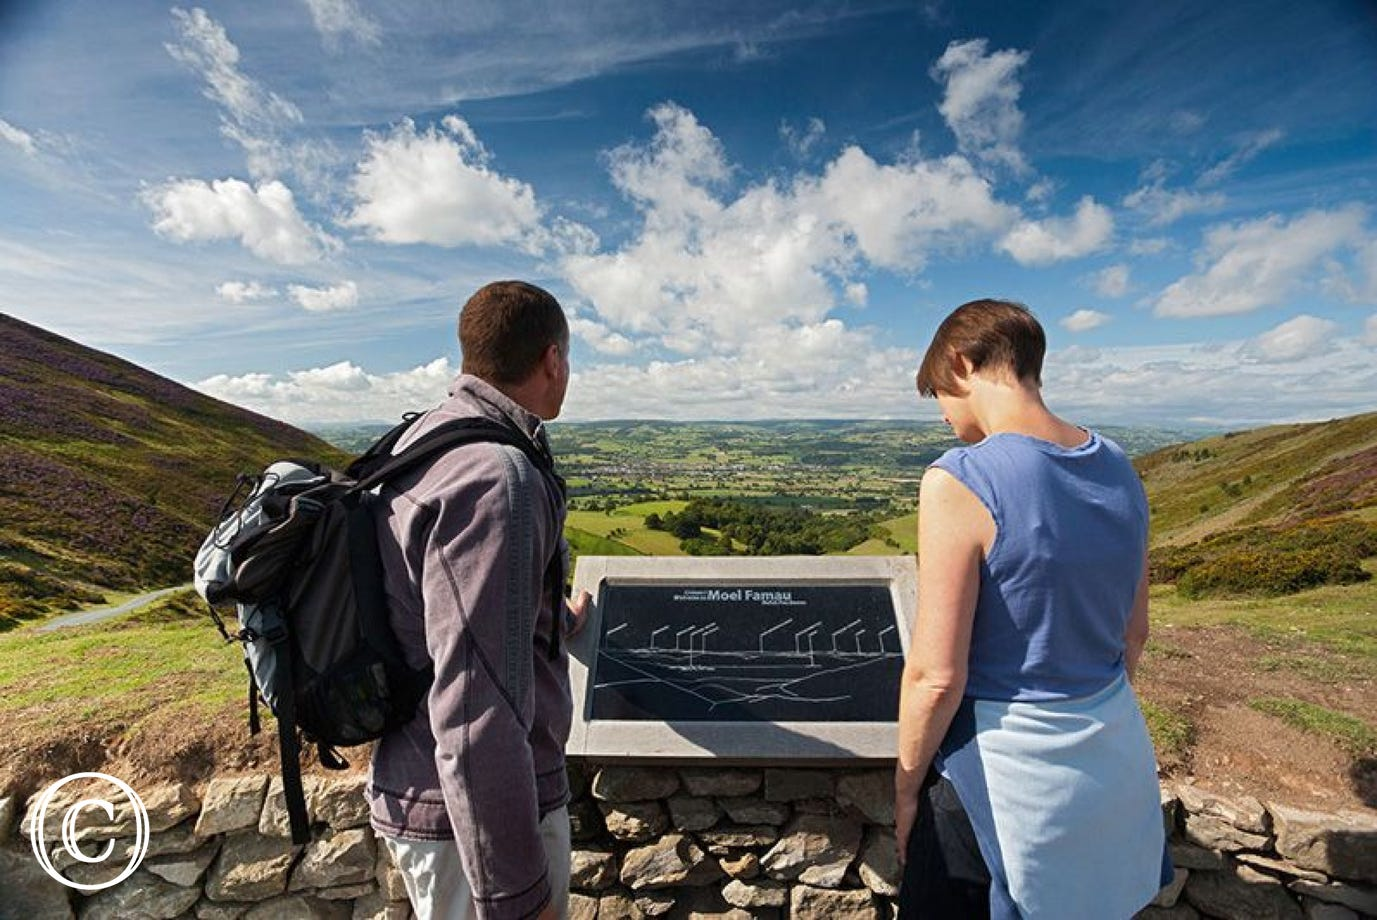 Admire the views over the Vale of Clwyd from Bwlch Pen Barras